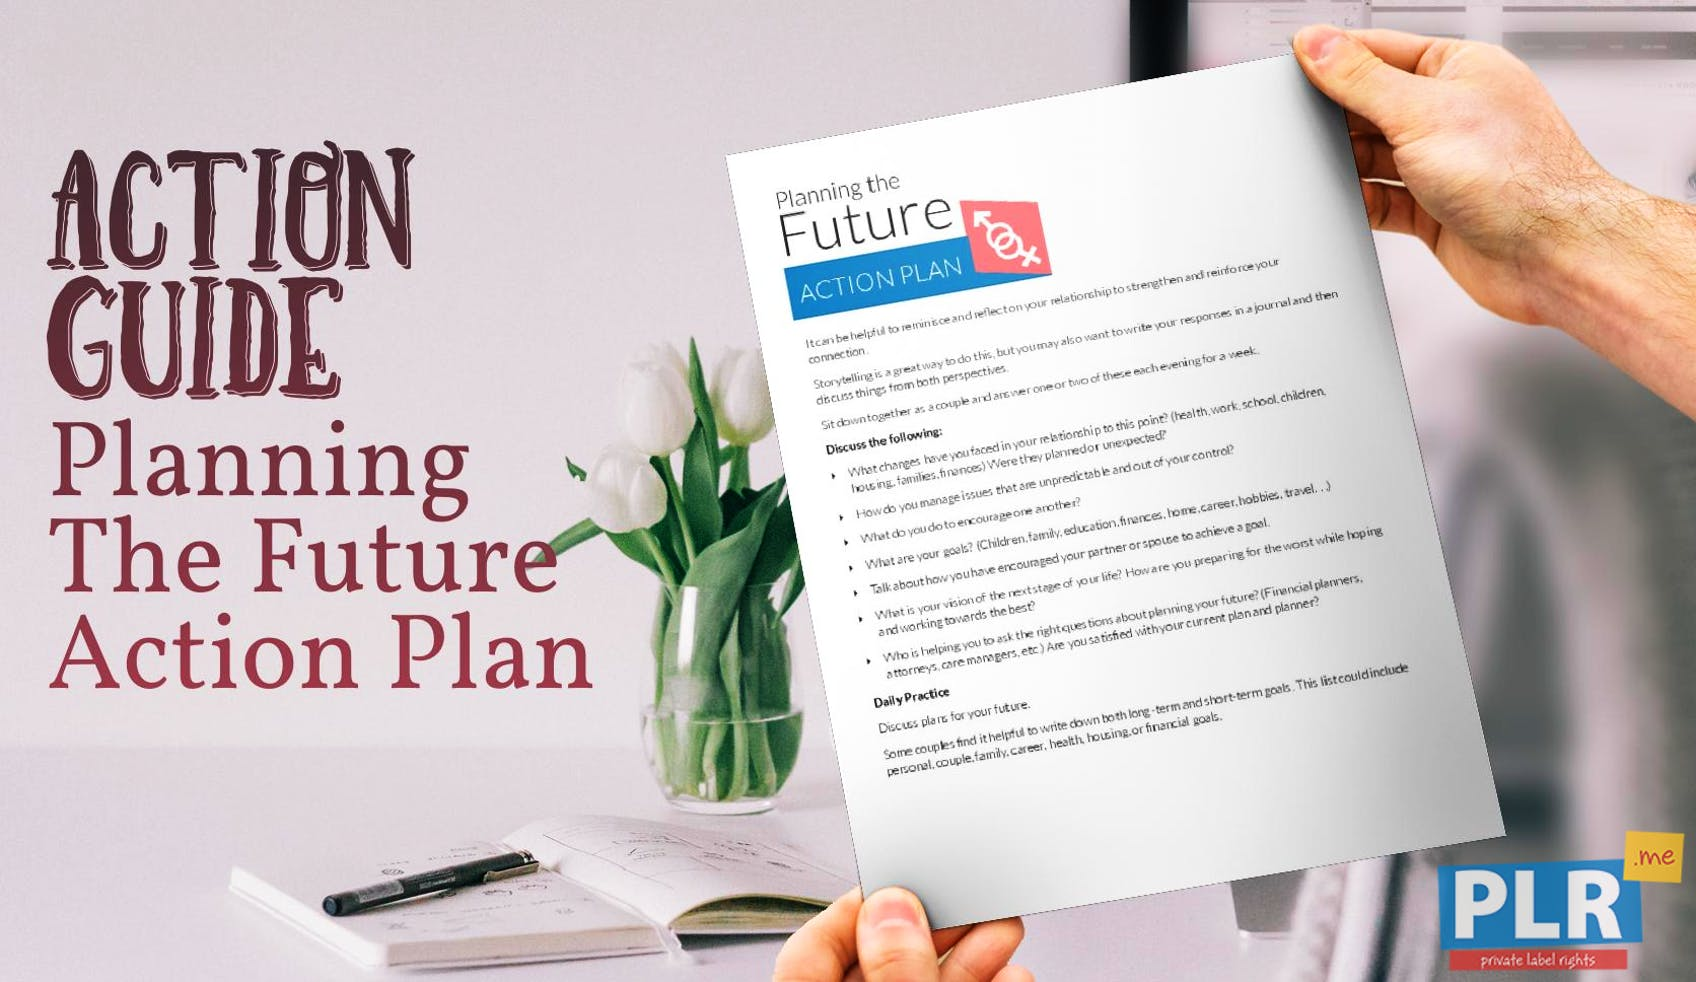 Planning The Future Action Plan